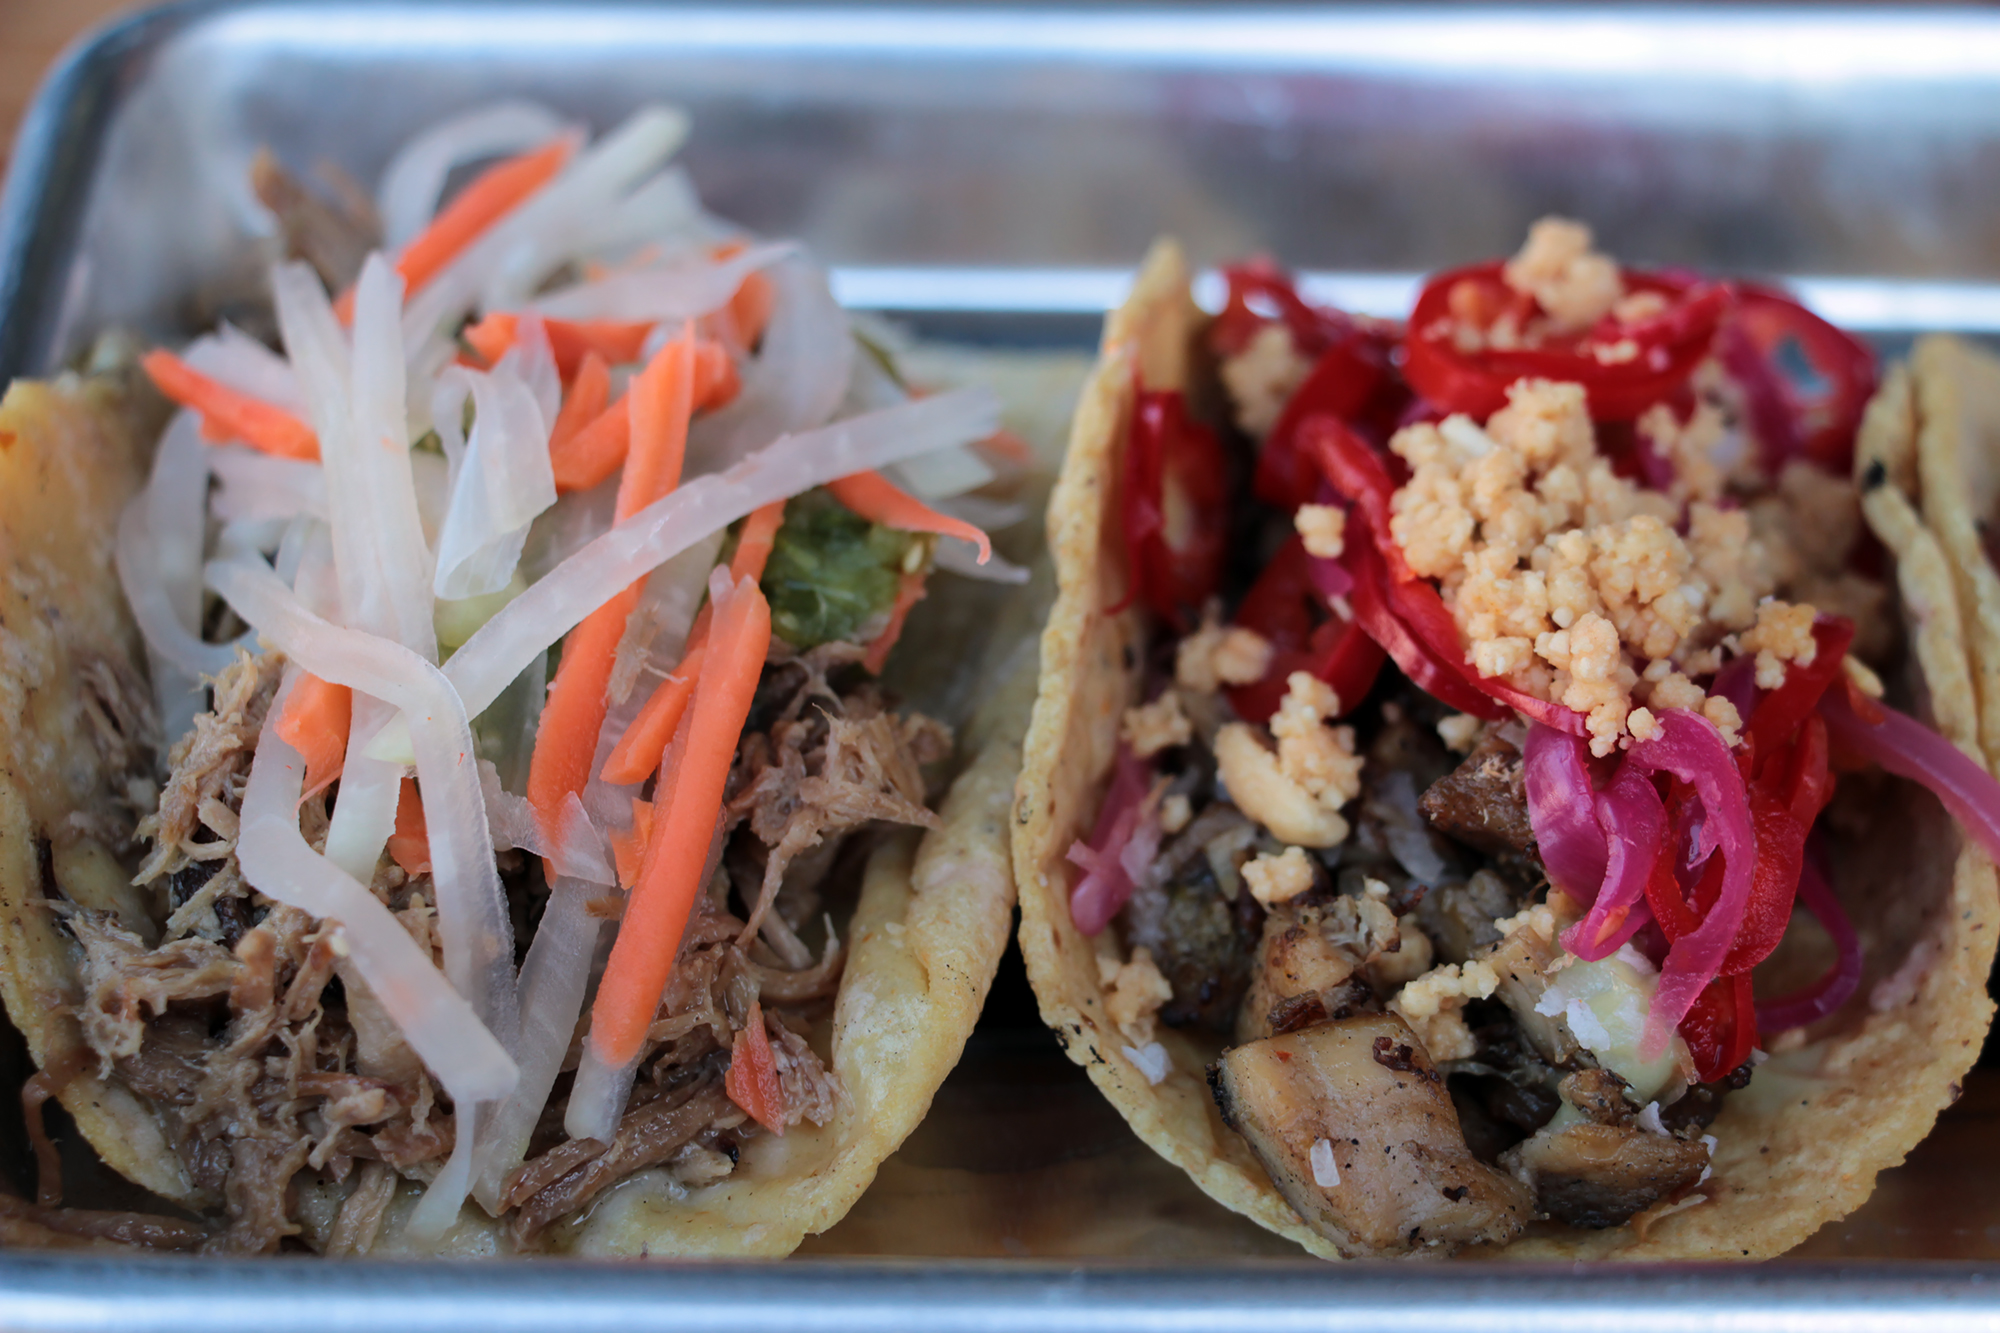 Filipino Pork Adobo (L) and Khmer Lemongrass Chicken tacos.